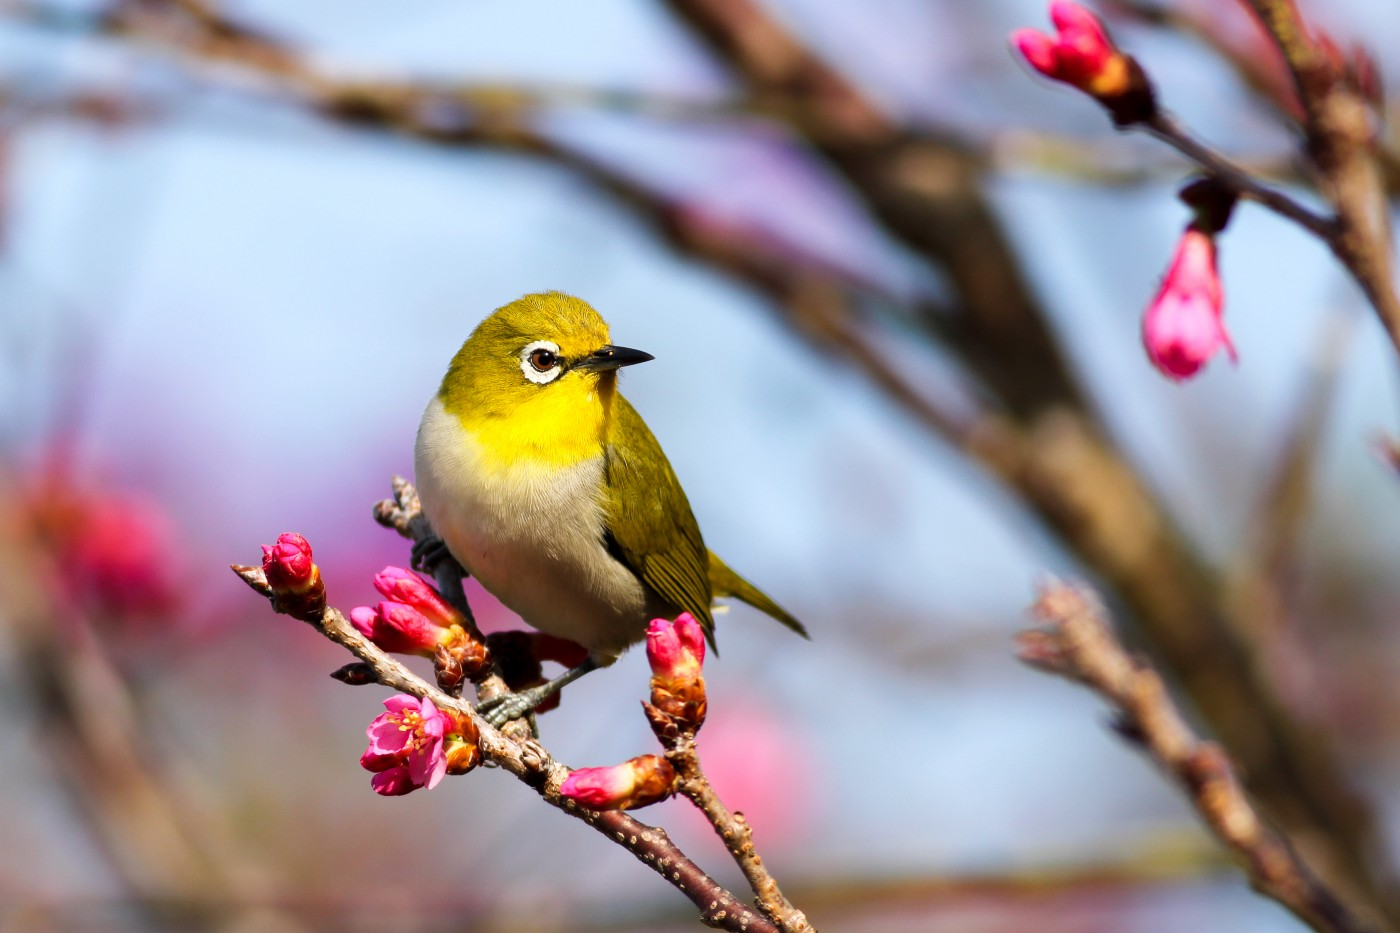 A bright yellow bird perches on a branch budding with pink flowers.